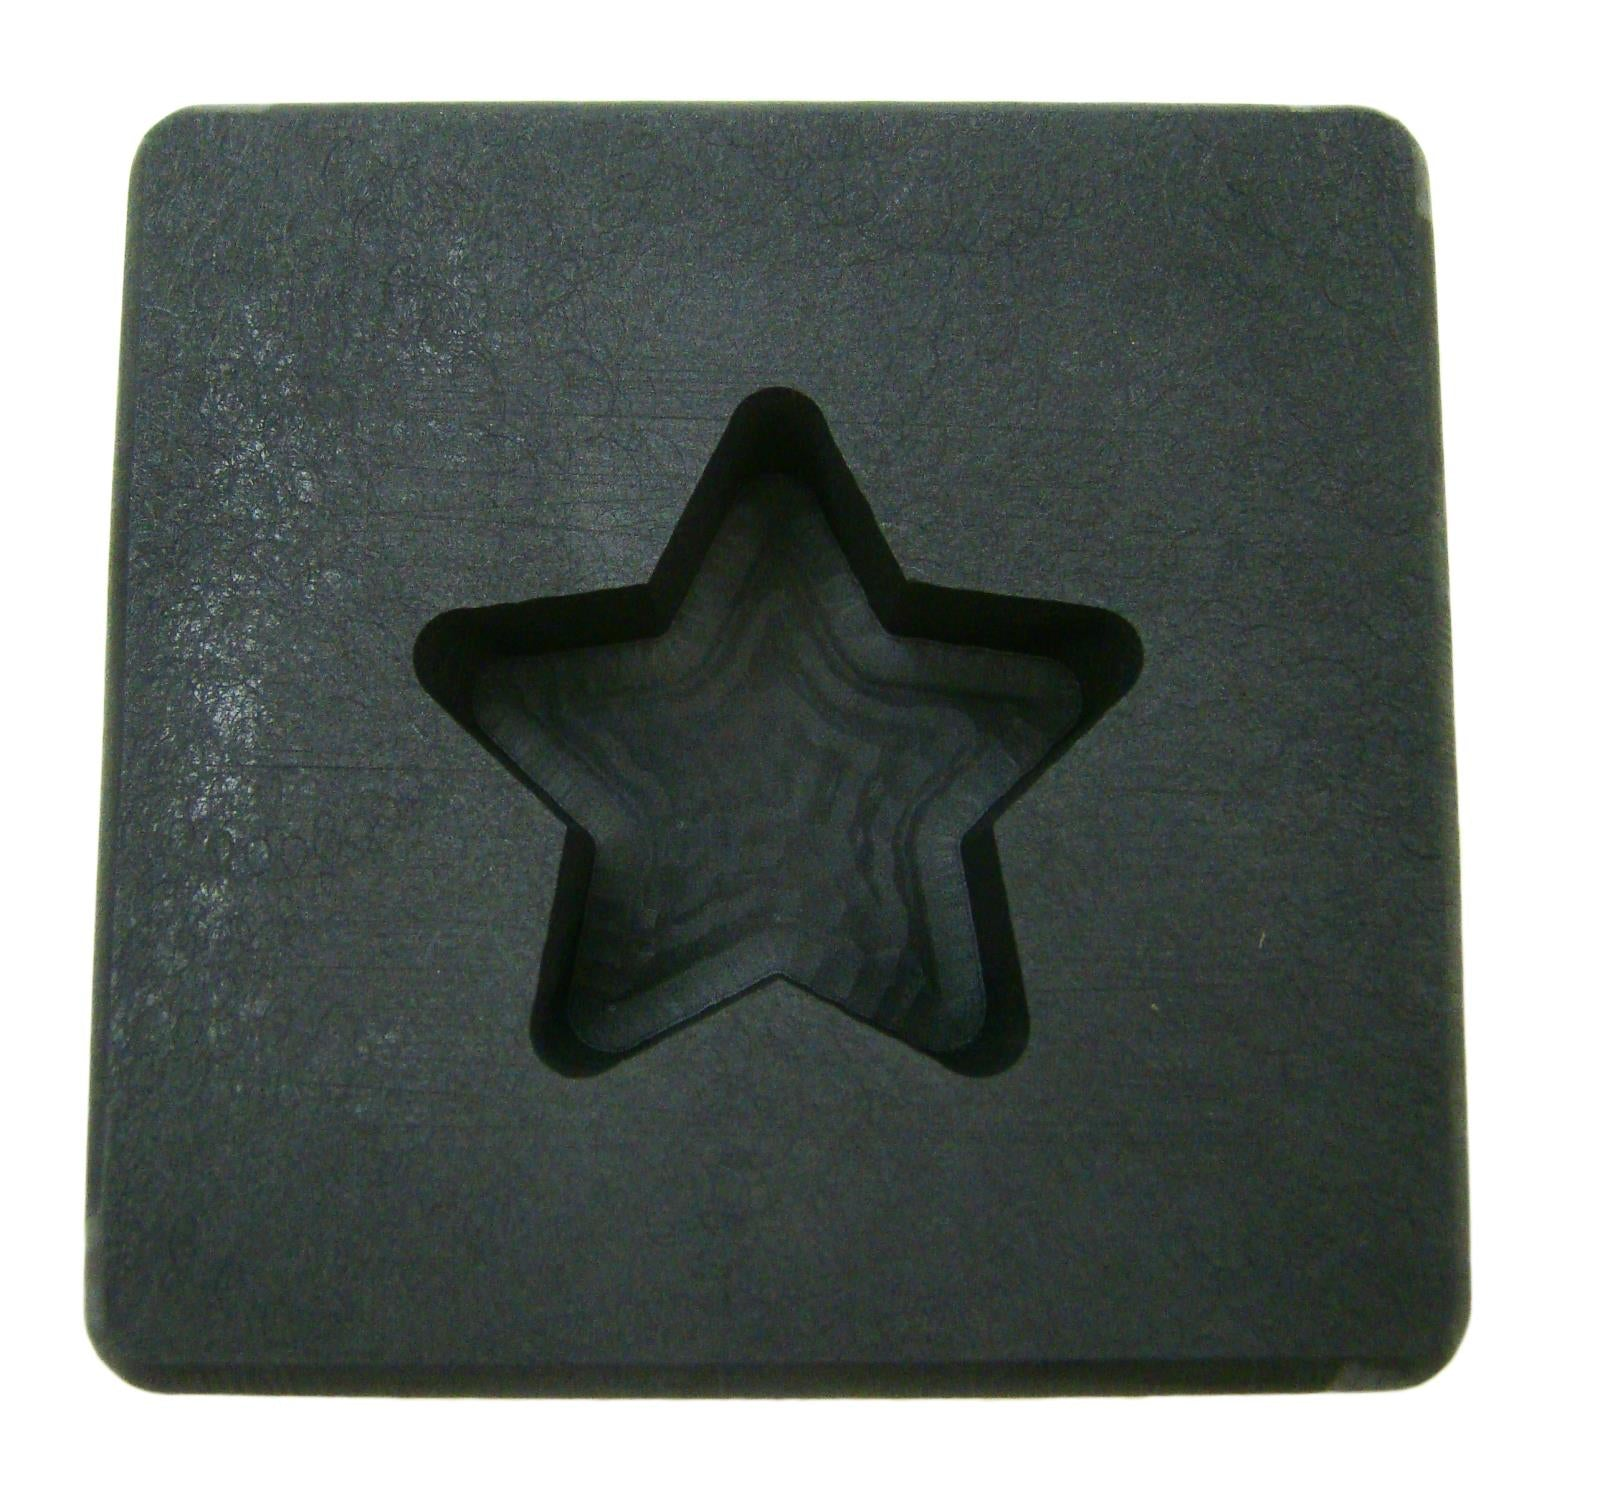 1 oz Gold Texas STAR Shape High Density Graphite Mold .5 oz Silver Bar-USA Made